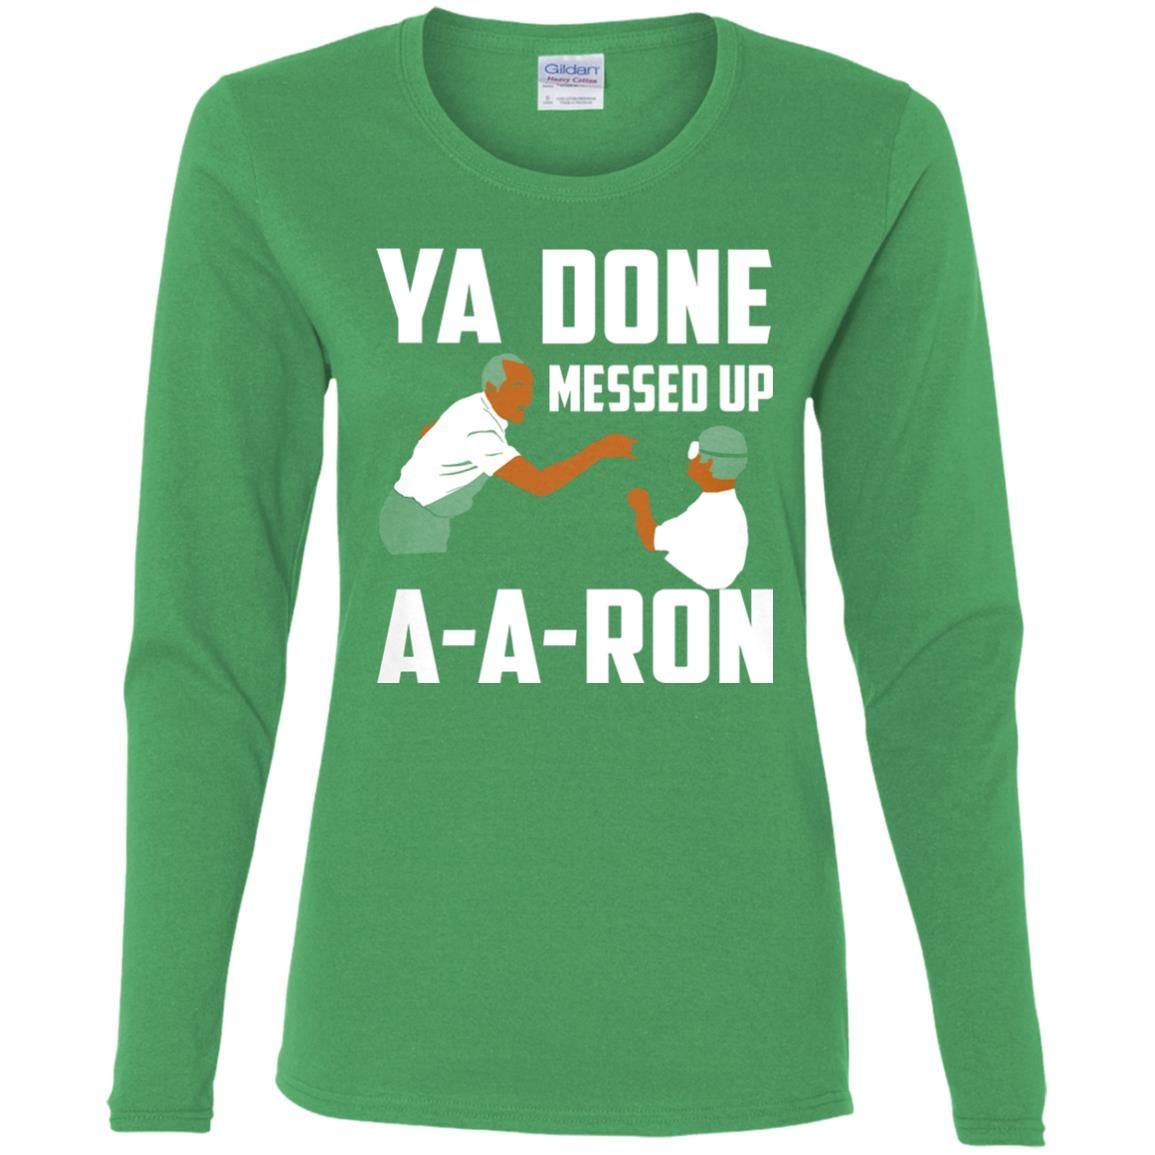 You Done Messed Up Aaron T Shirt Products Pinterest Promotion